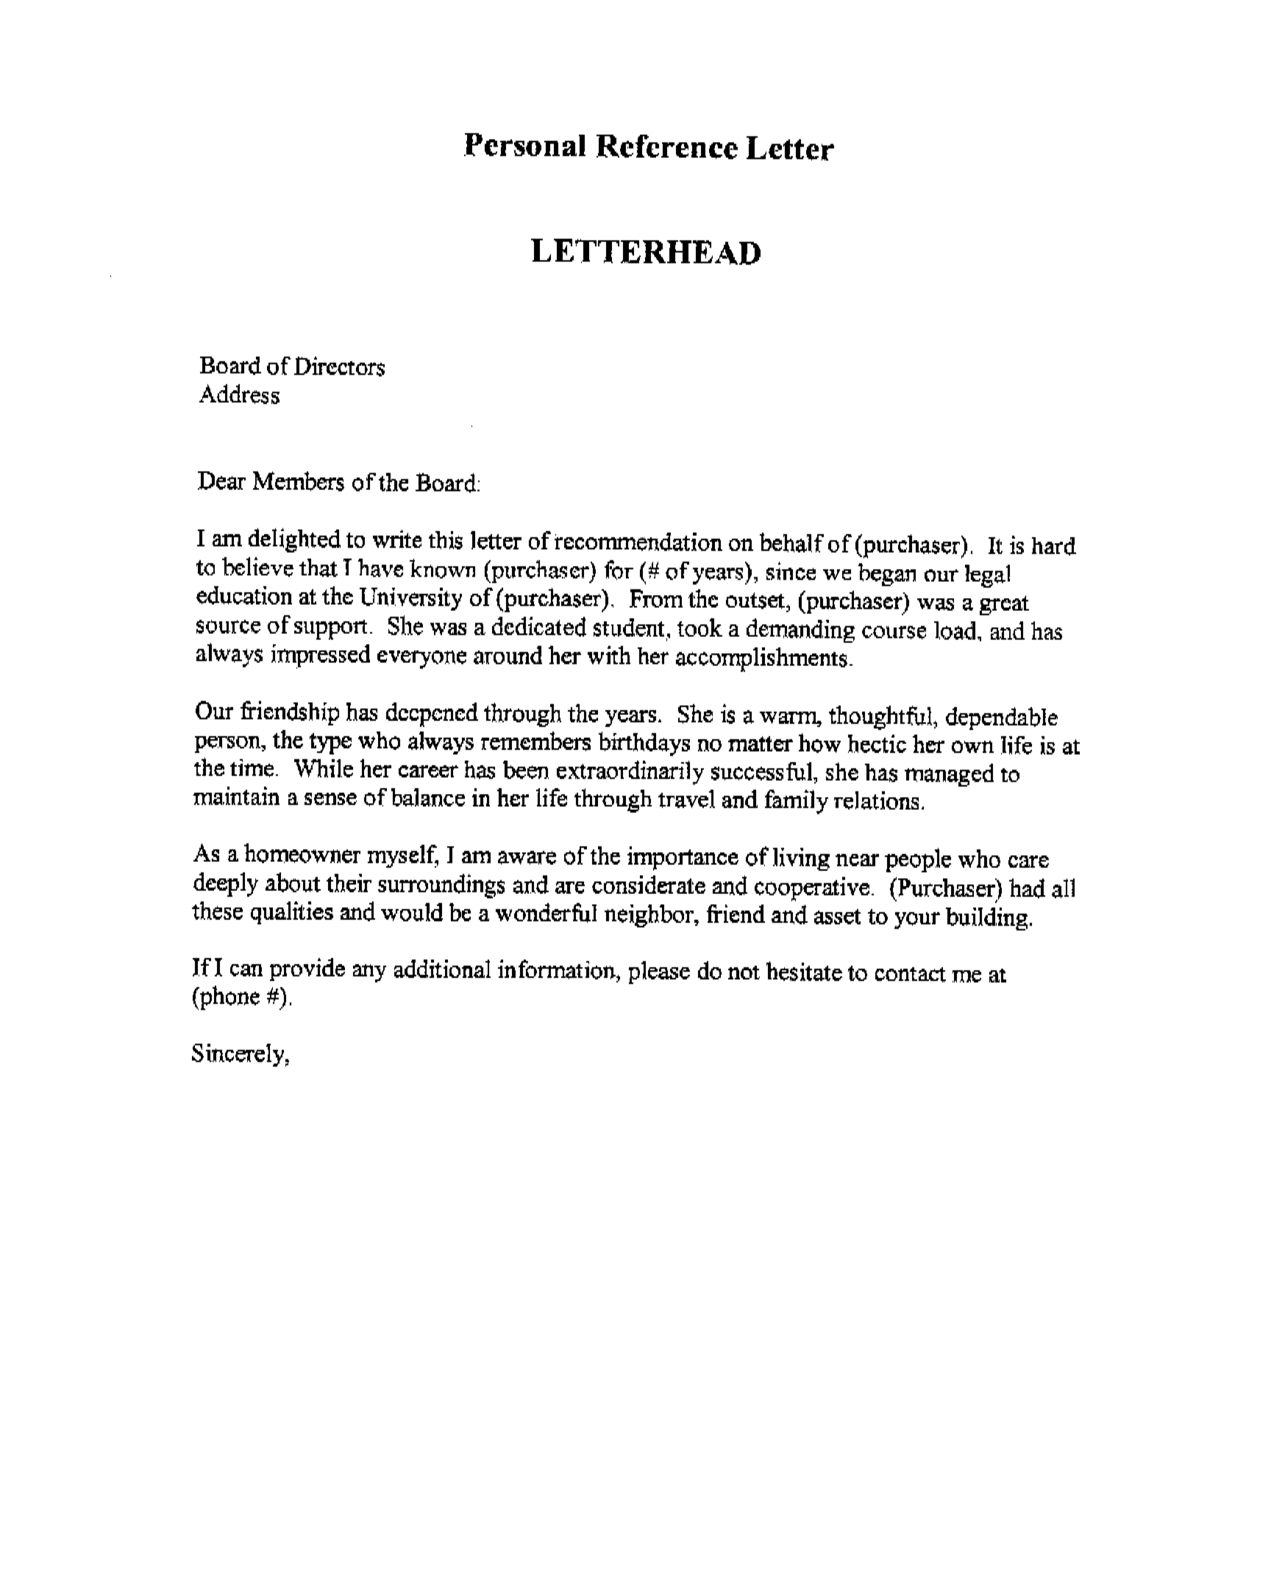 personal recommendation letter samples for a friend Parlo